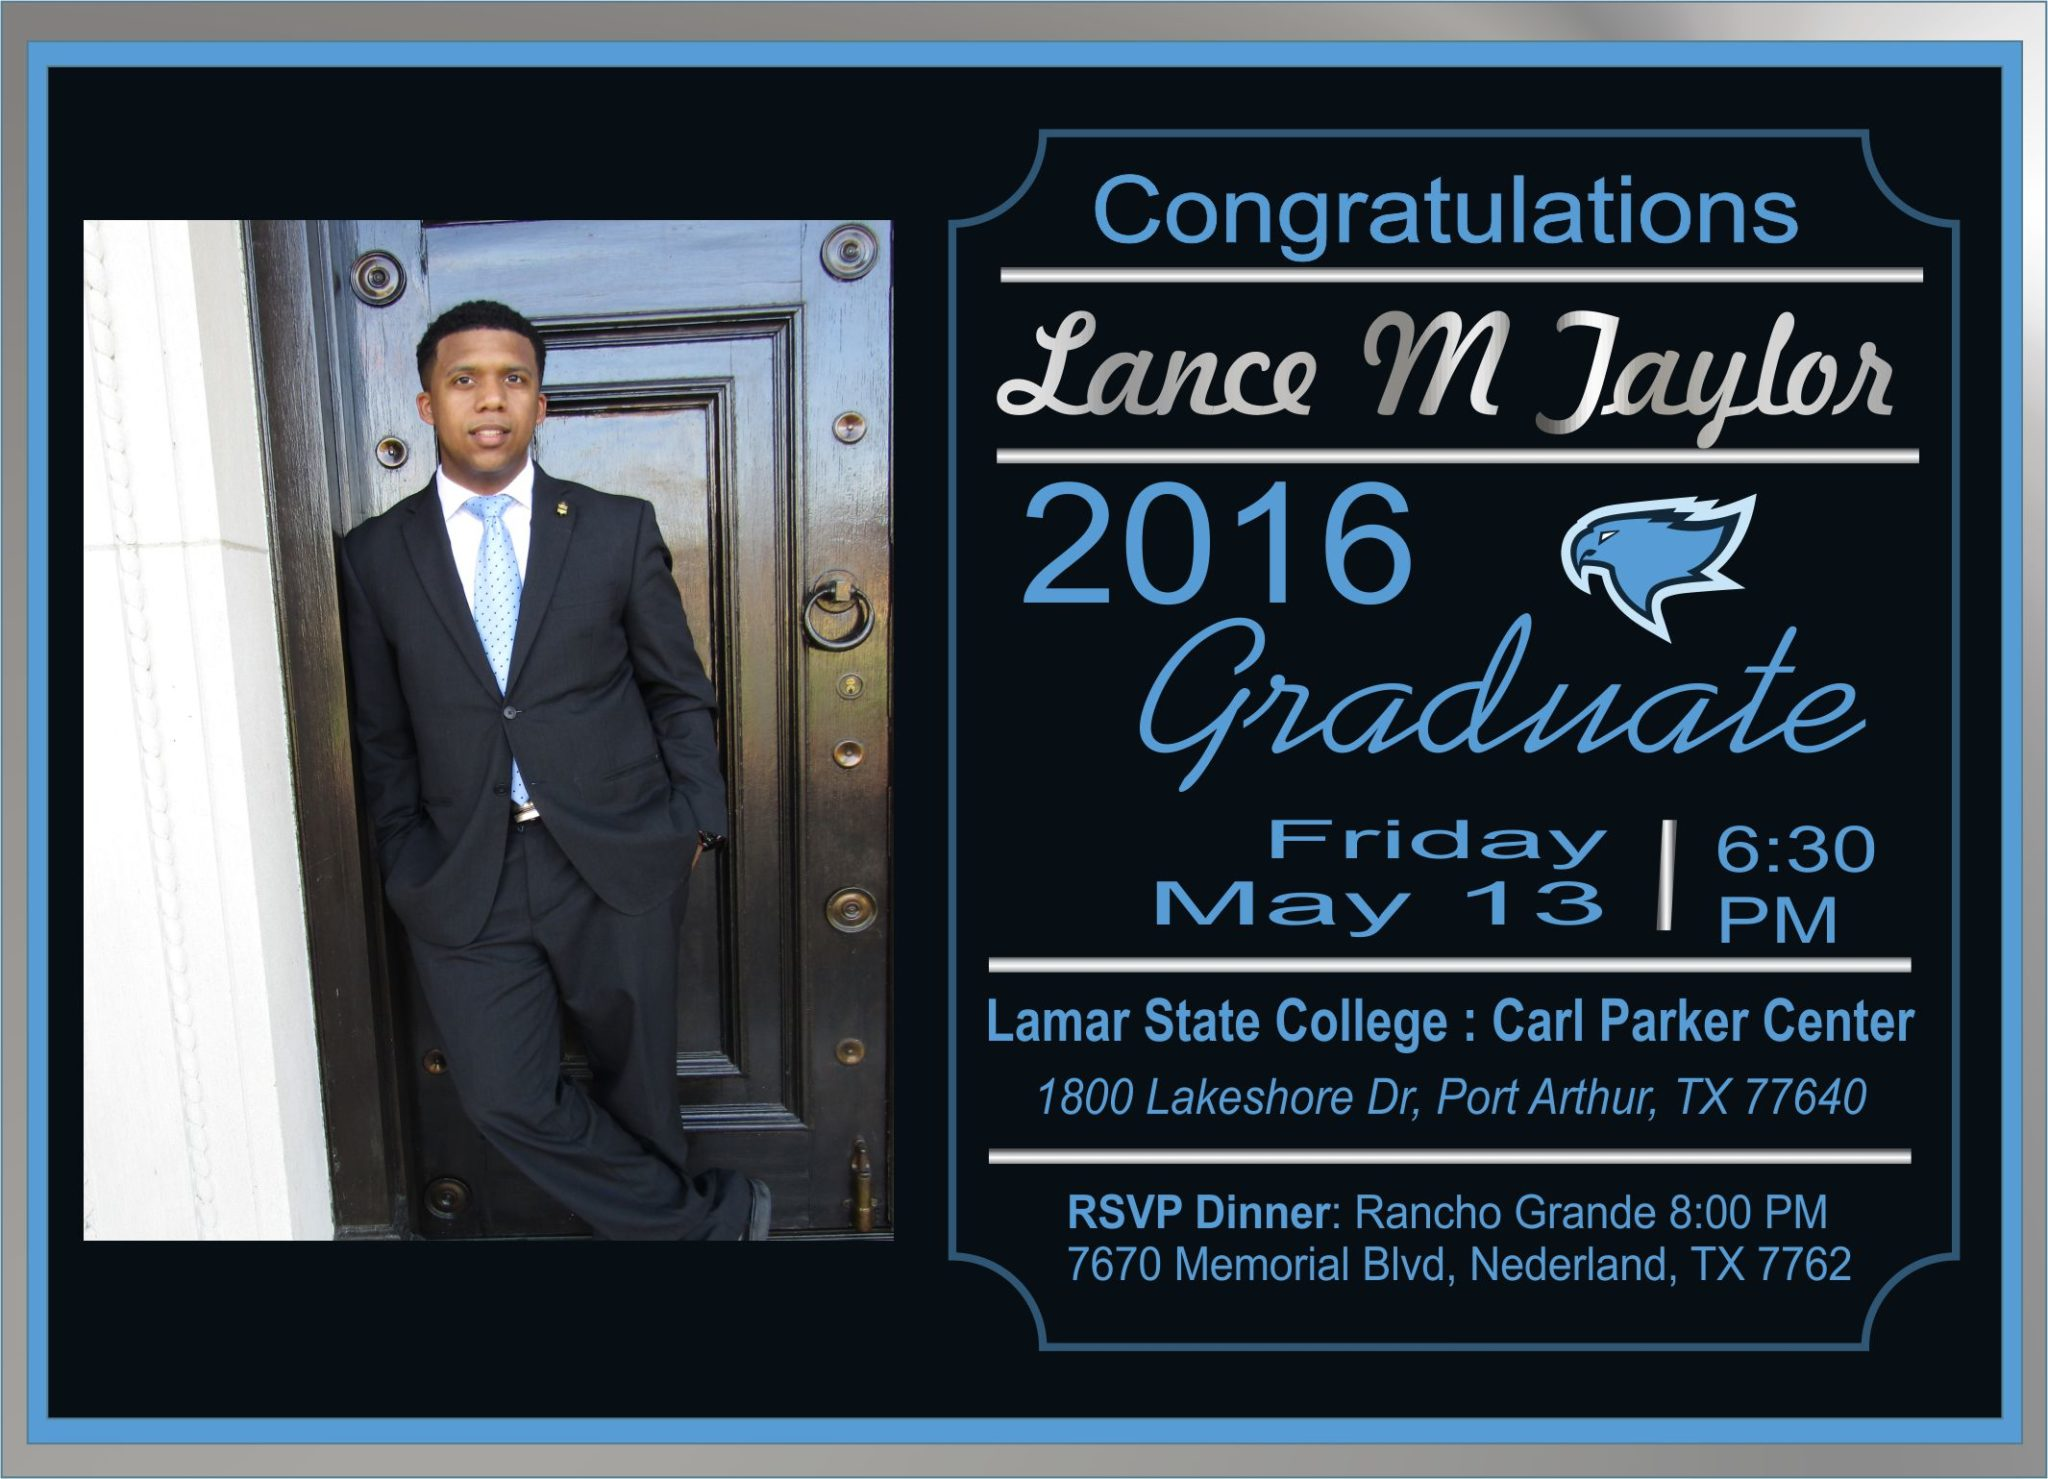 Graduation Invitations.